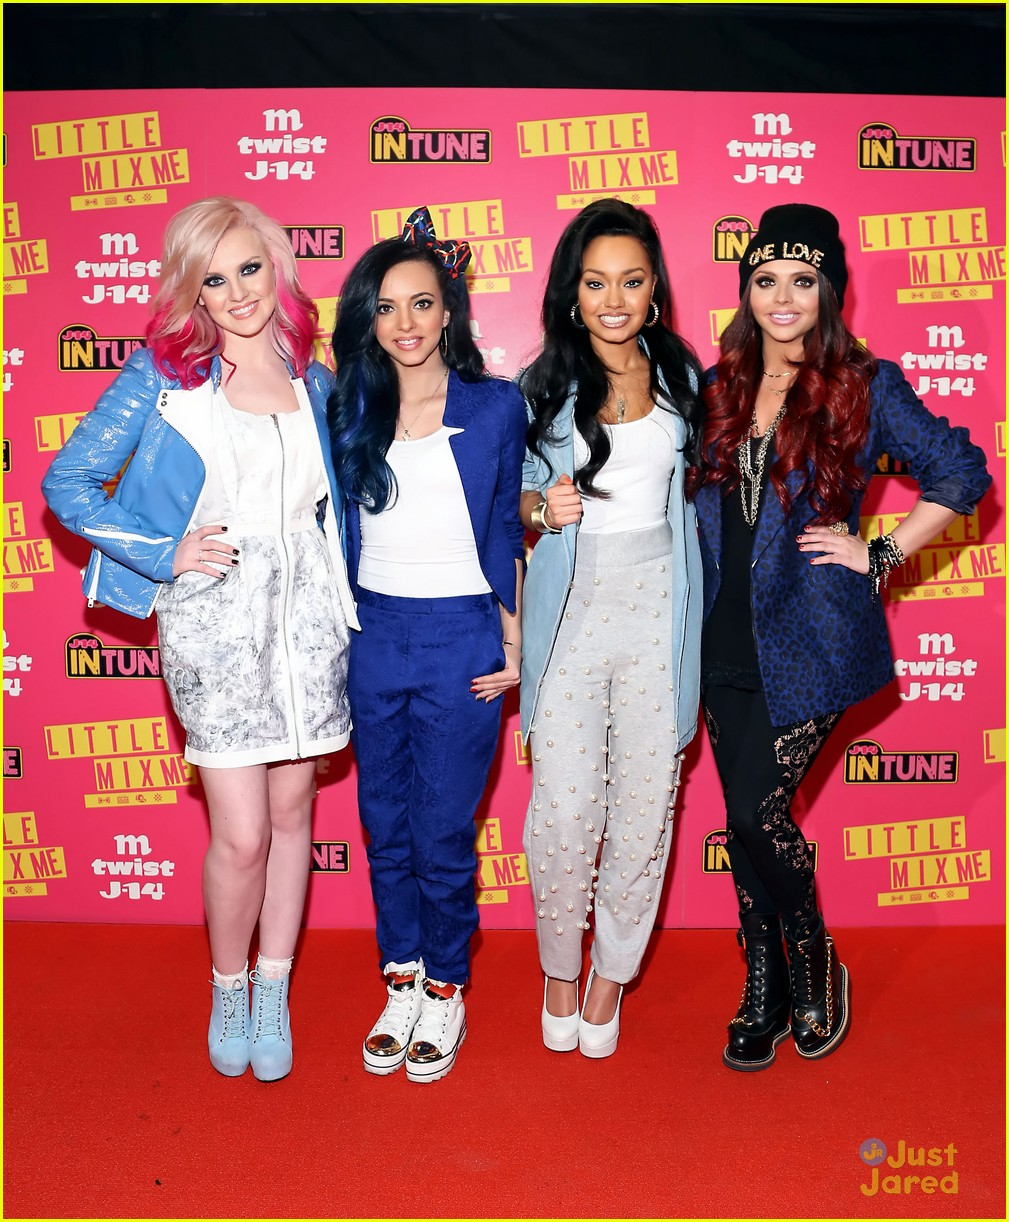 little mix hard rock intune 13